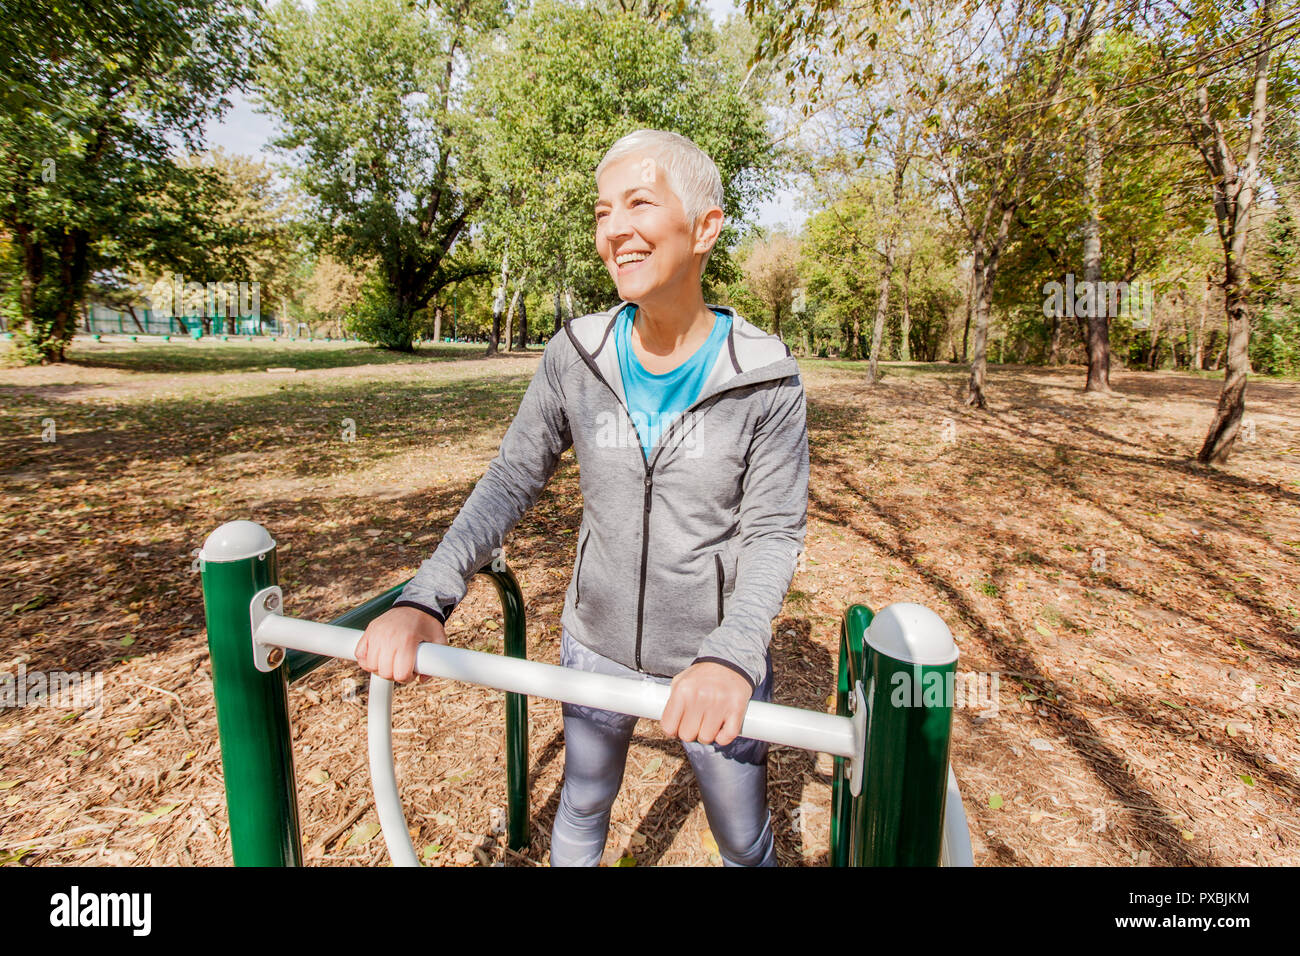 Elderly Woman In Sports Clothes Exercising At Outdoor Fitness Park, Healthy Lifestyle Mature People. Stock Photo